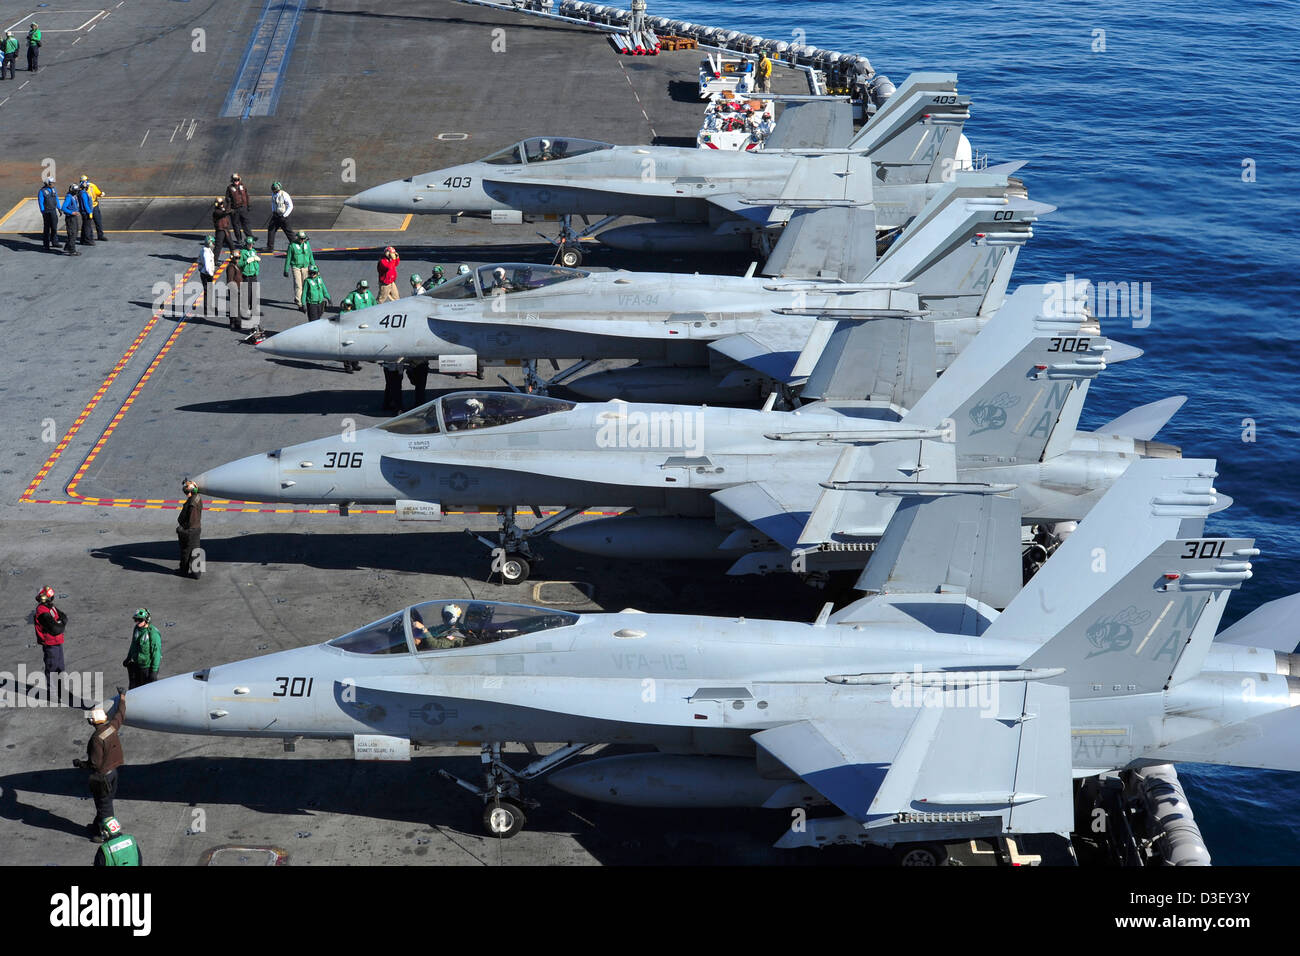 us-navy-fa-18c-hornets-line-up-before-take-off-from-the-us-navy-nimitz-D3EY3Y.jpg